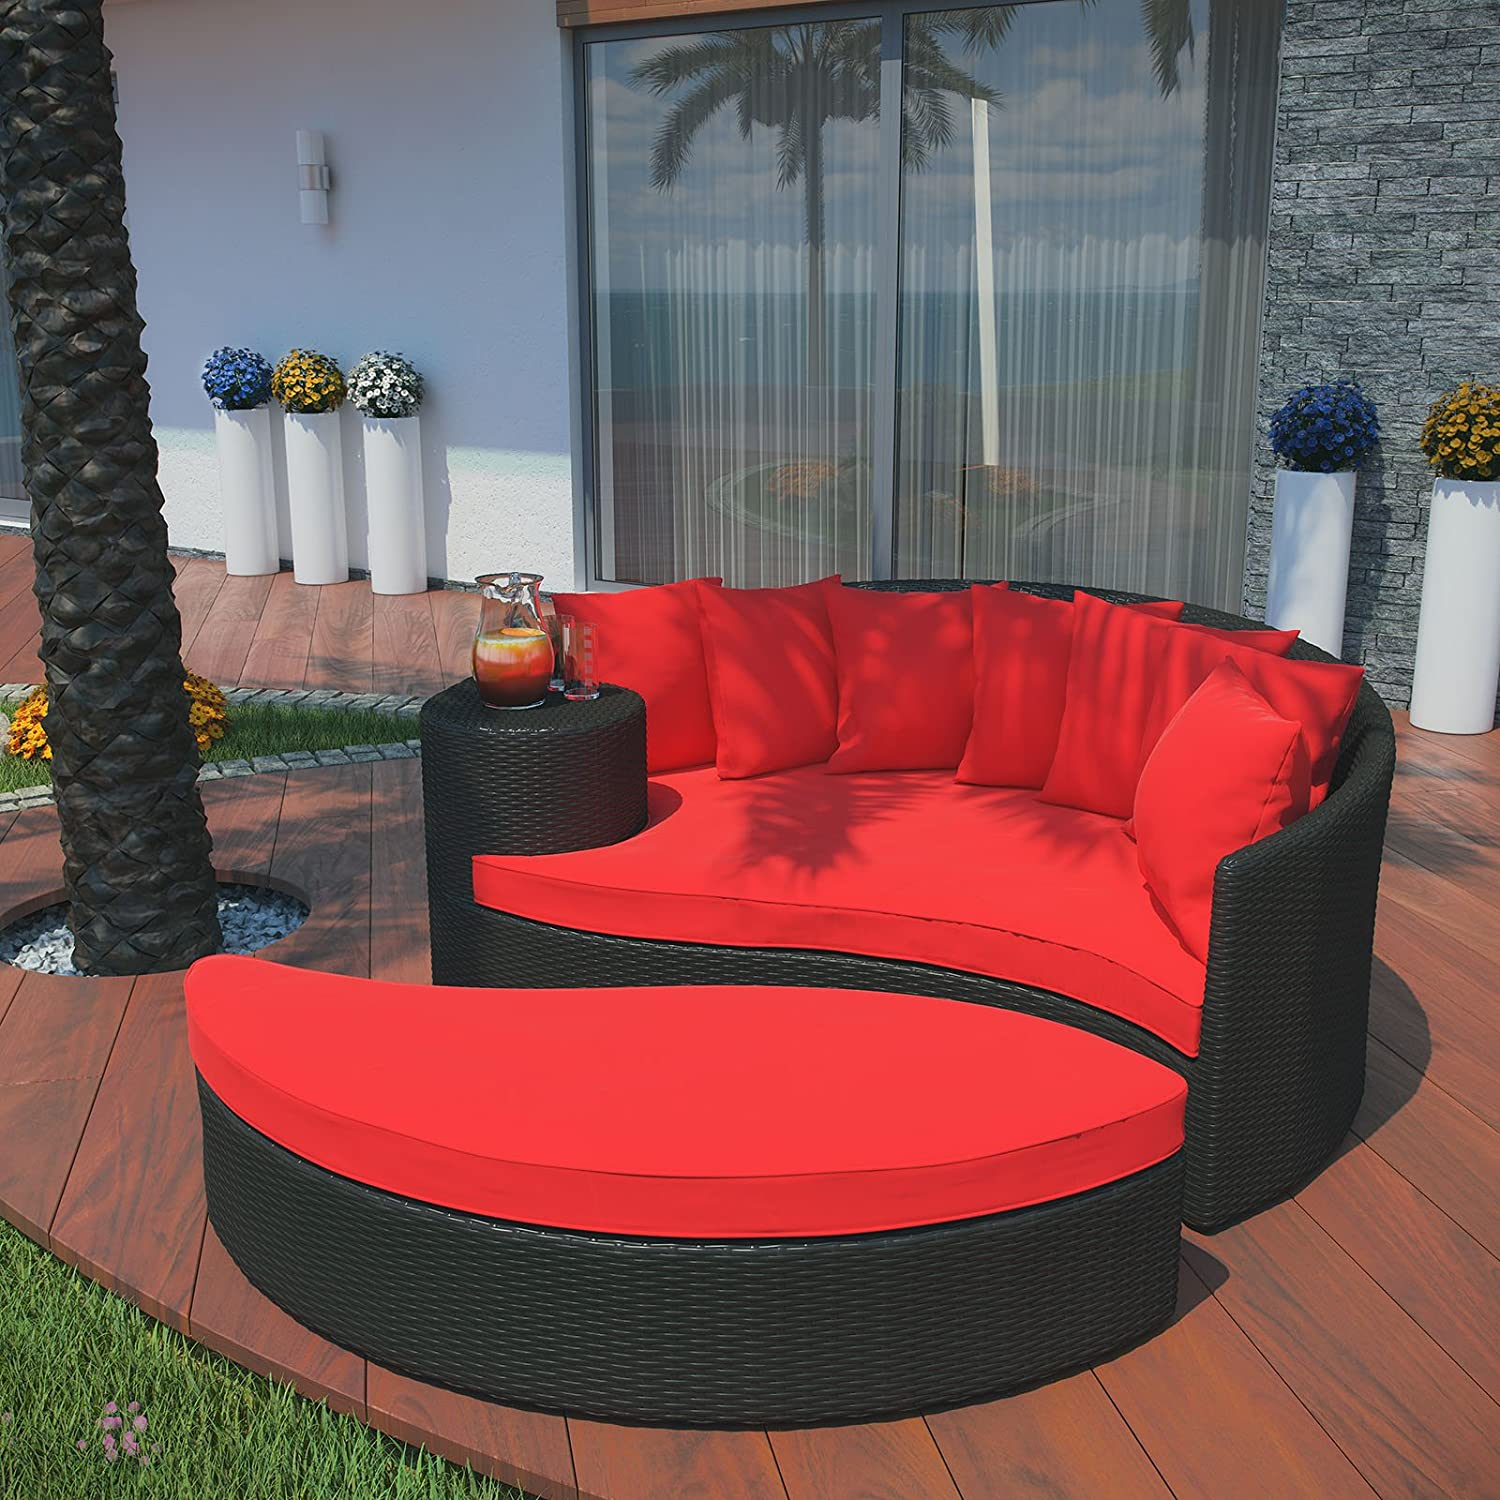 Amazon.com : Modway Taiji Outdoor Wicker Patio Daybed with Ottoman in  Espresso with Red Cushions : Patio Lounge Chairs : Garden & Outdoor